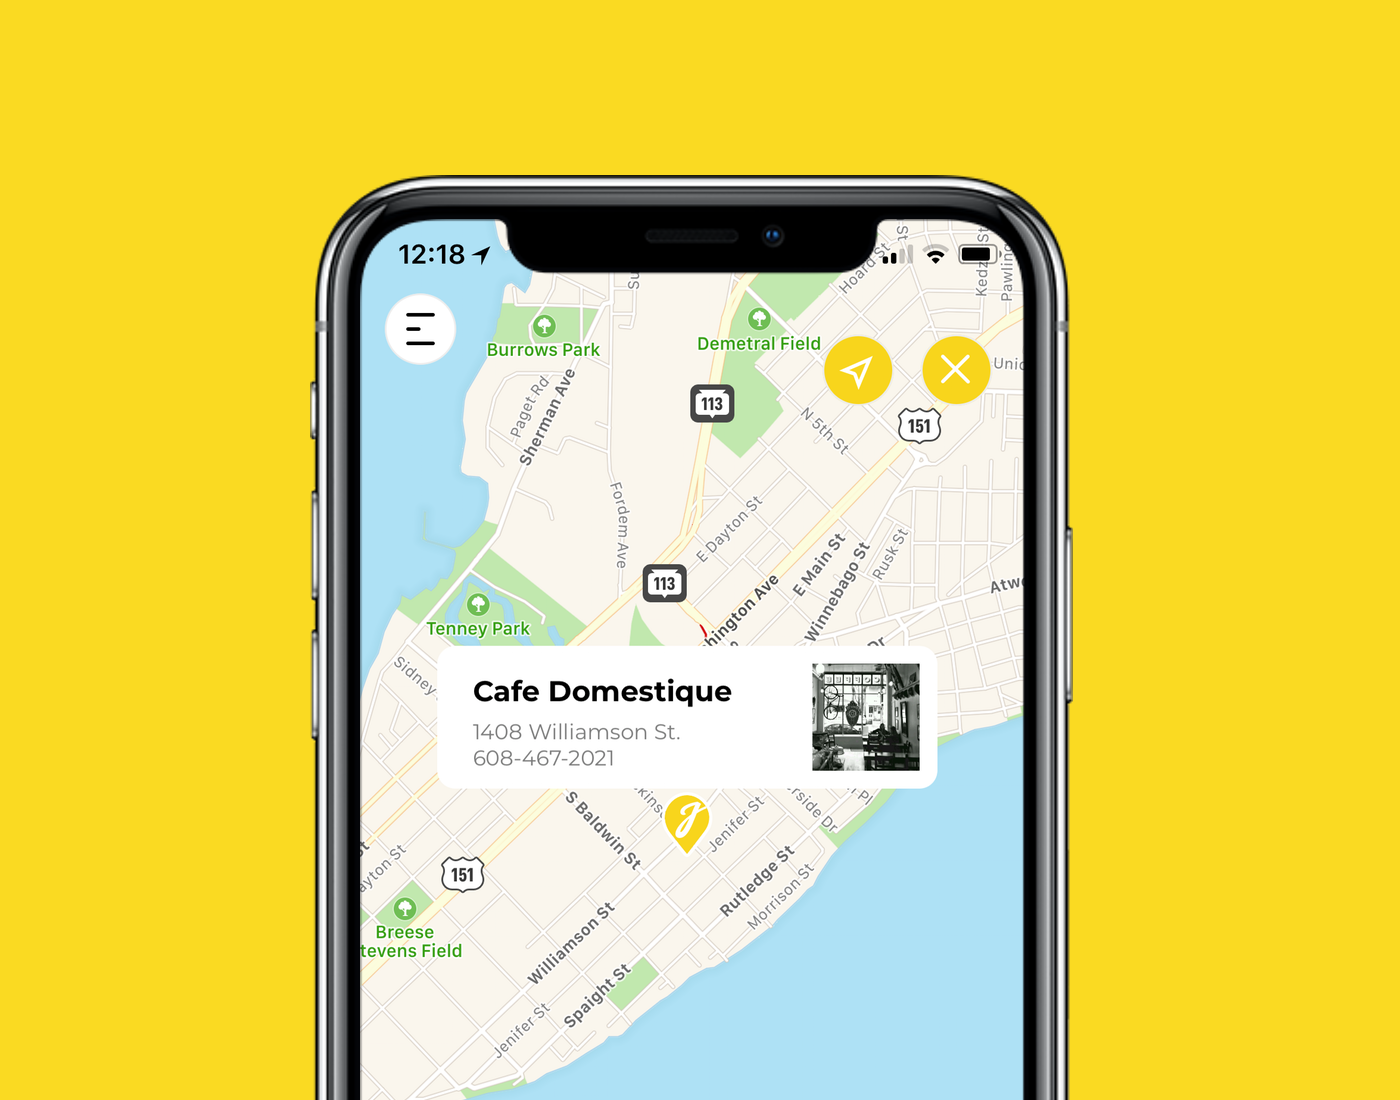 Caffeinate locally. - The map-view homepage highlights local coffee shops near your current location and throughout the area. Find your favorite or discover some place new.